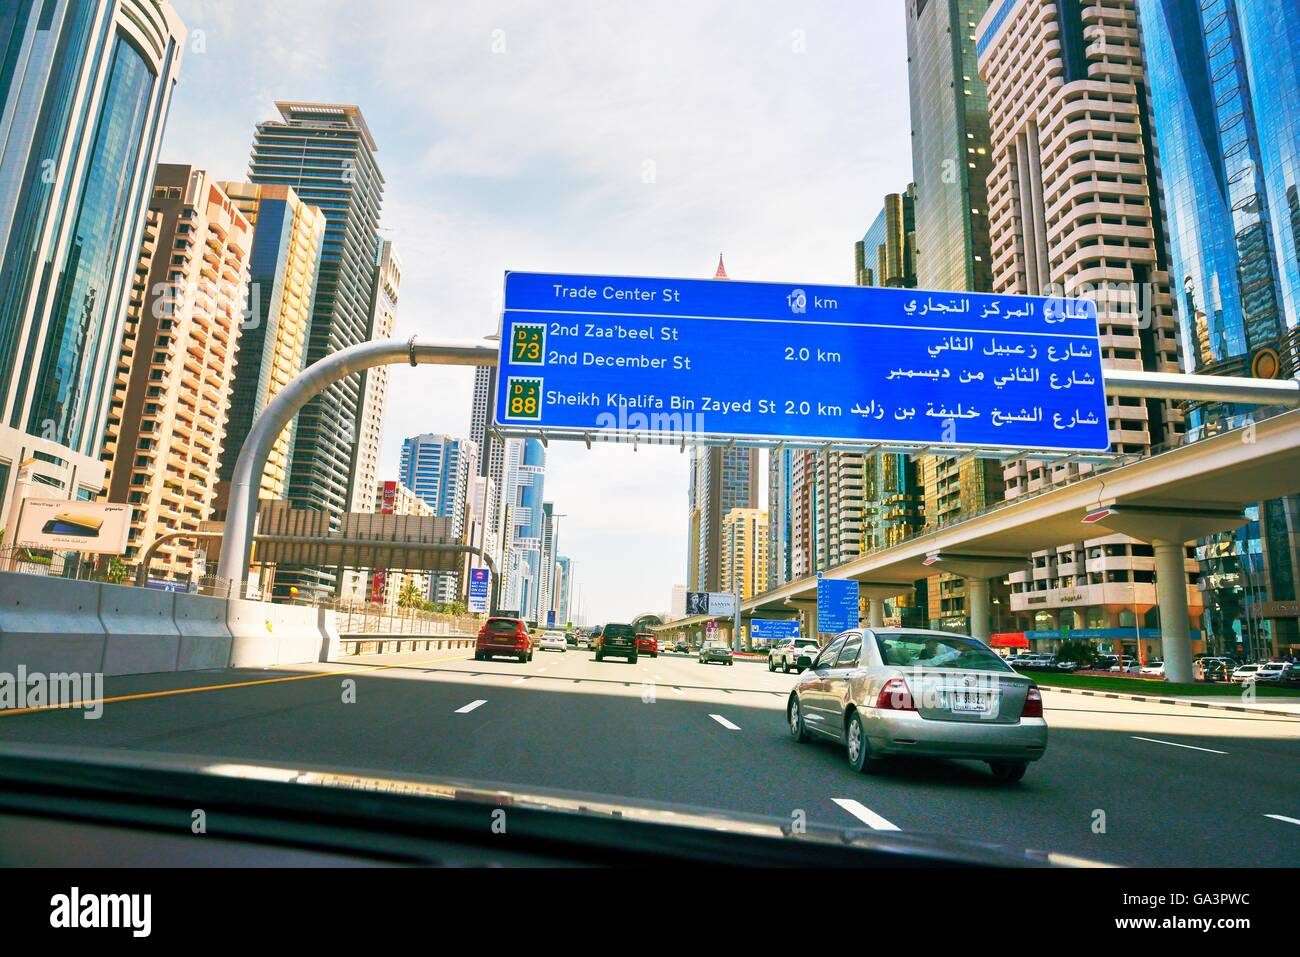 City of Dubai. Road signs driving along city centre Sheikh Zayed Road. Al Yaquob Tower in distance. United Arab - Stock Image